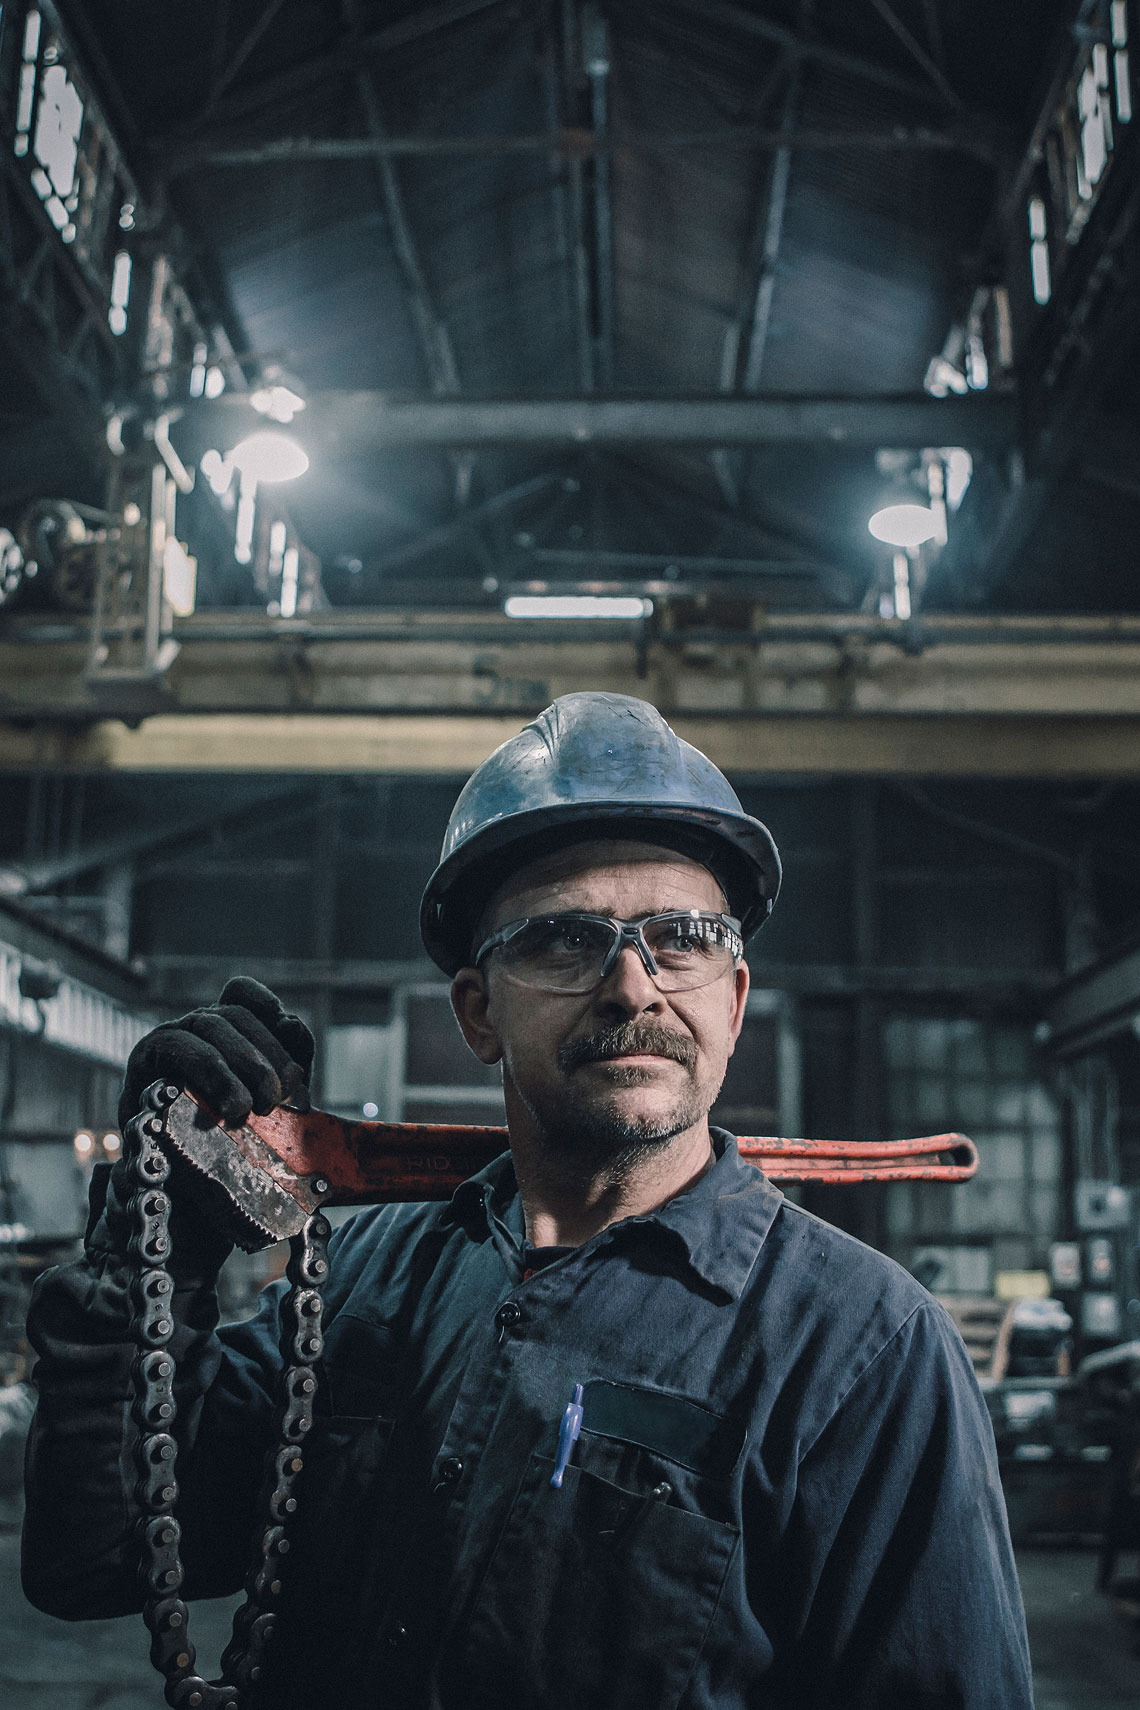 Steel Factory Worker Portrait  | Gamut | John Fedele Industrial Photography